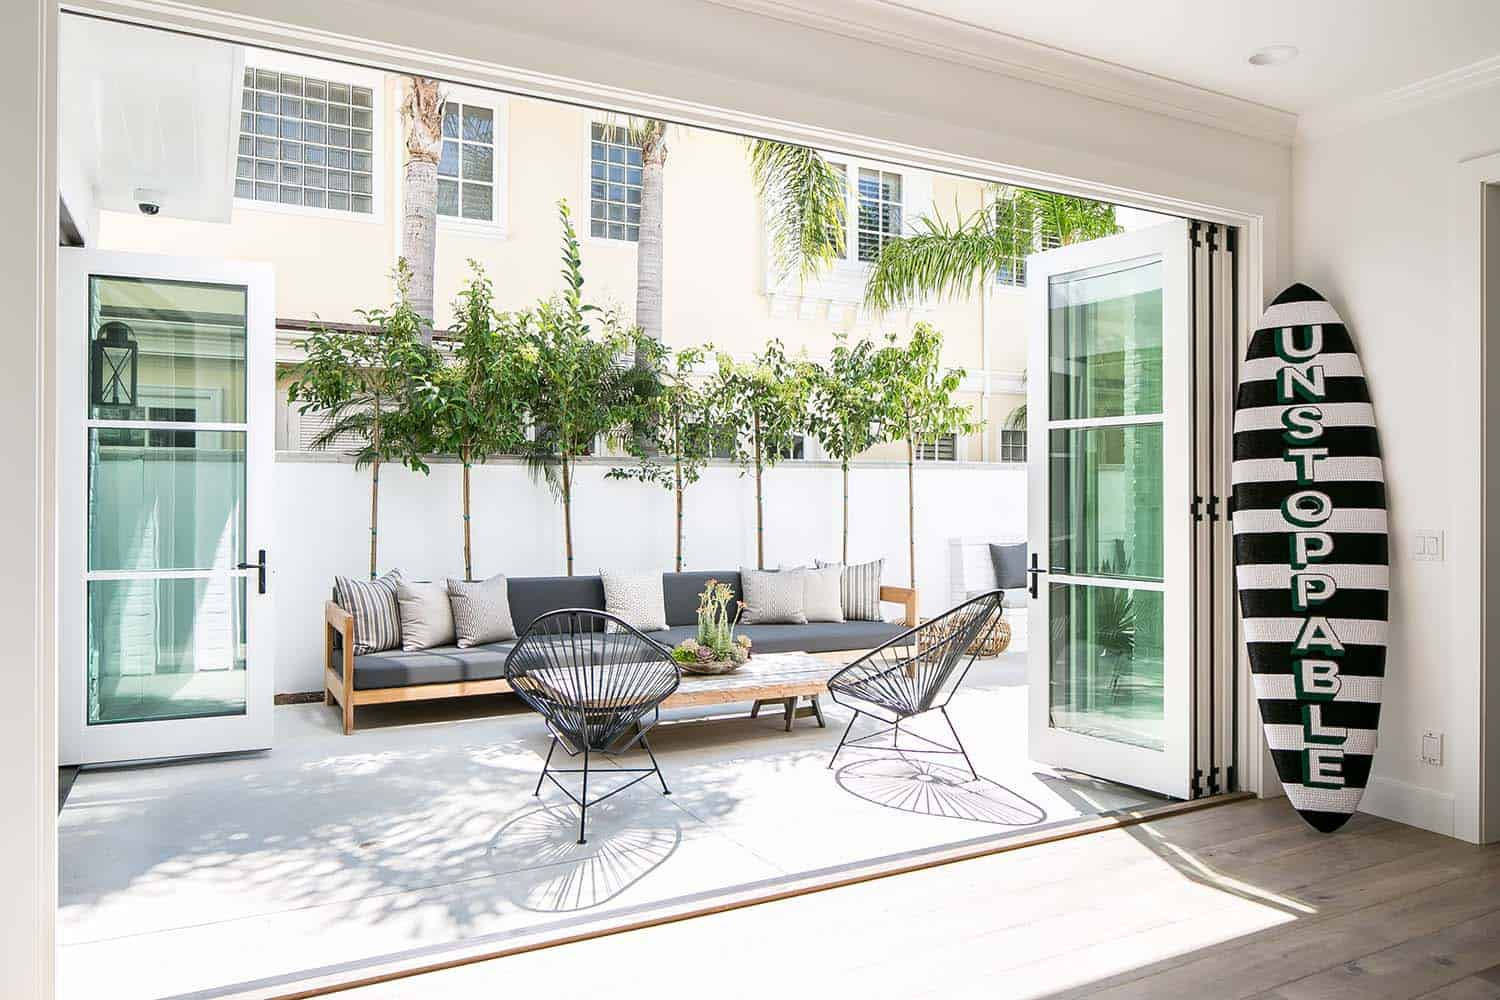 Comfortable sofas and outdoor chairs for a cozy patio space.